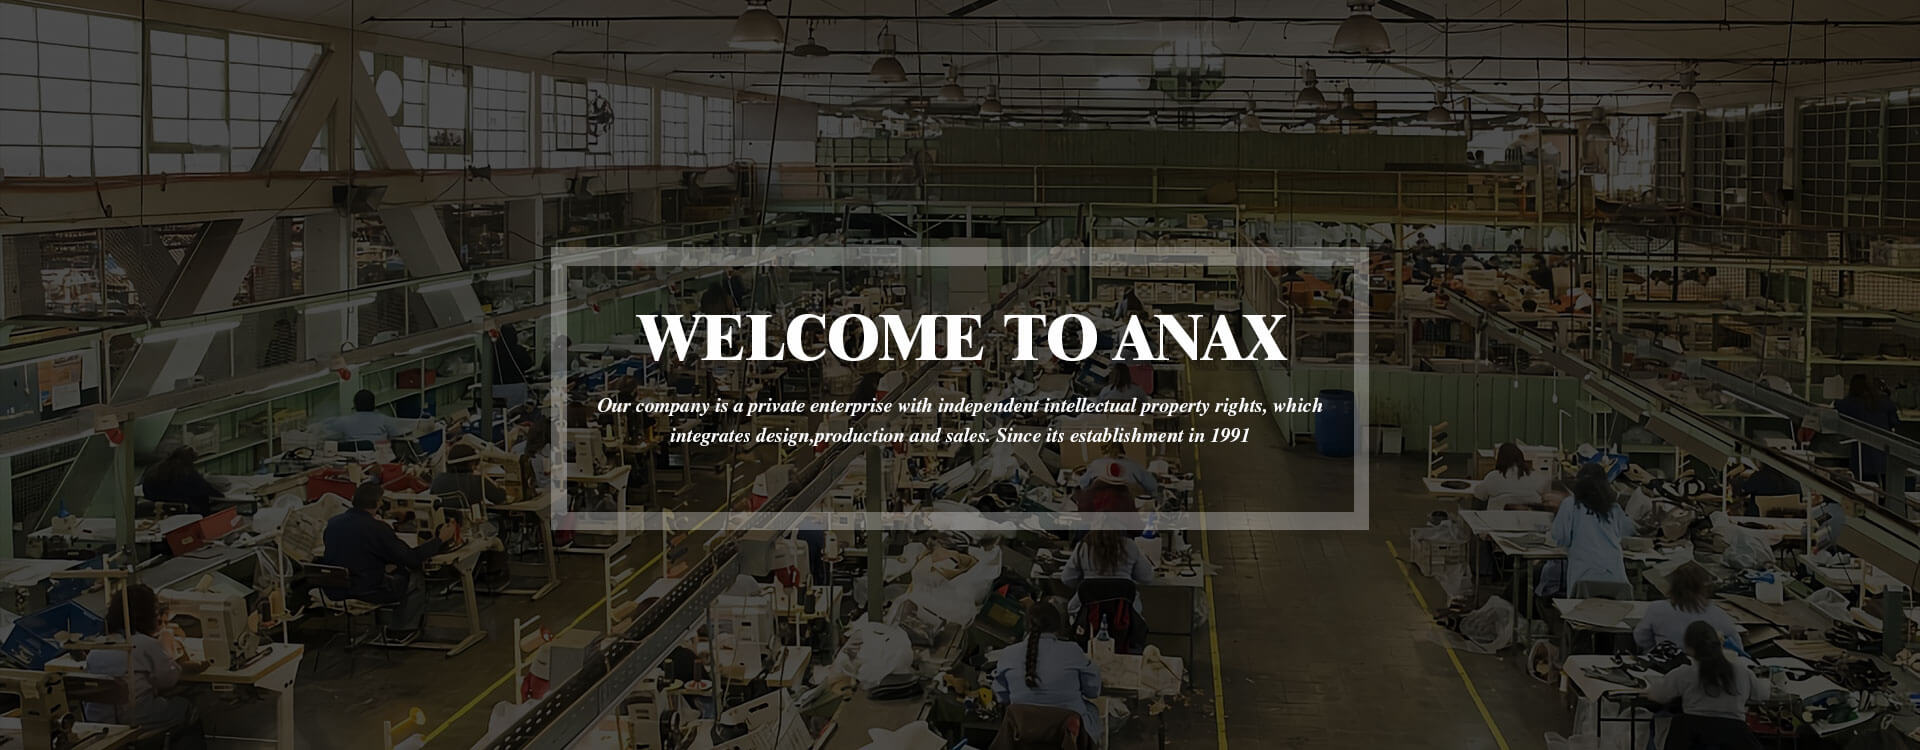 (UK)Anax Shoes Factory